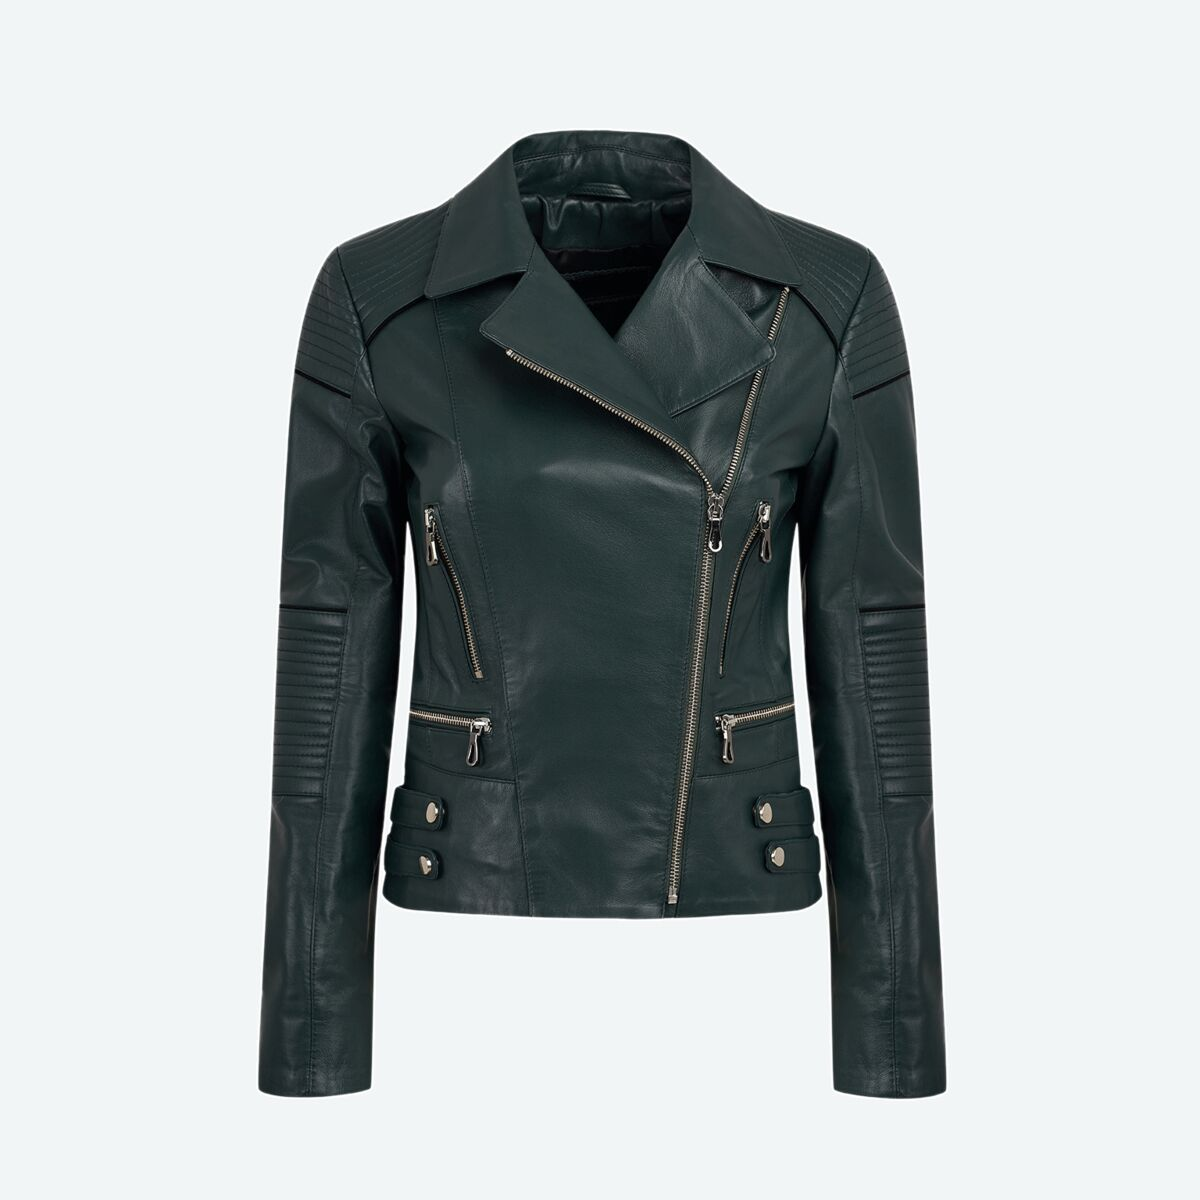 Women's Leather Motorcycle Jacket - Dark Green